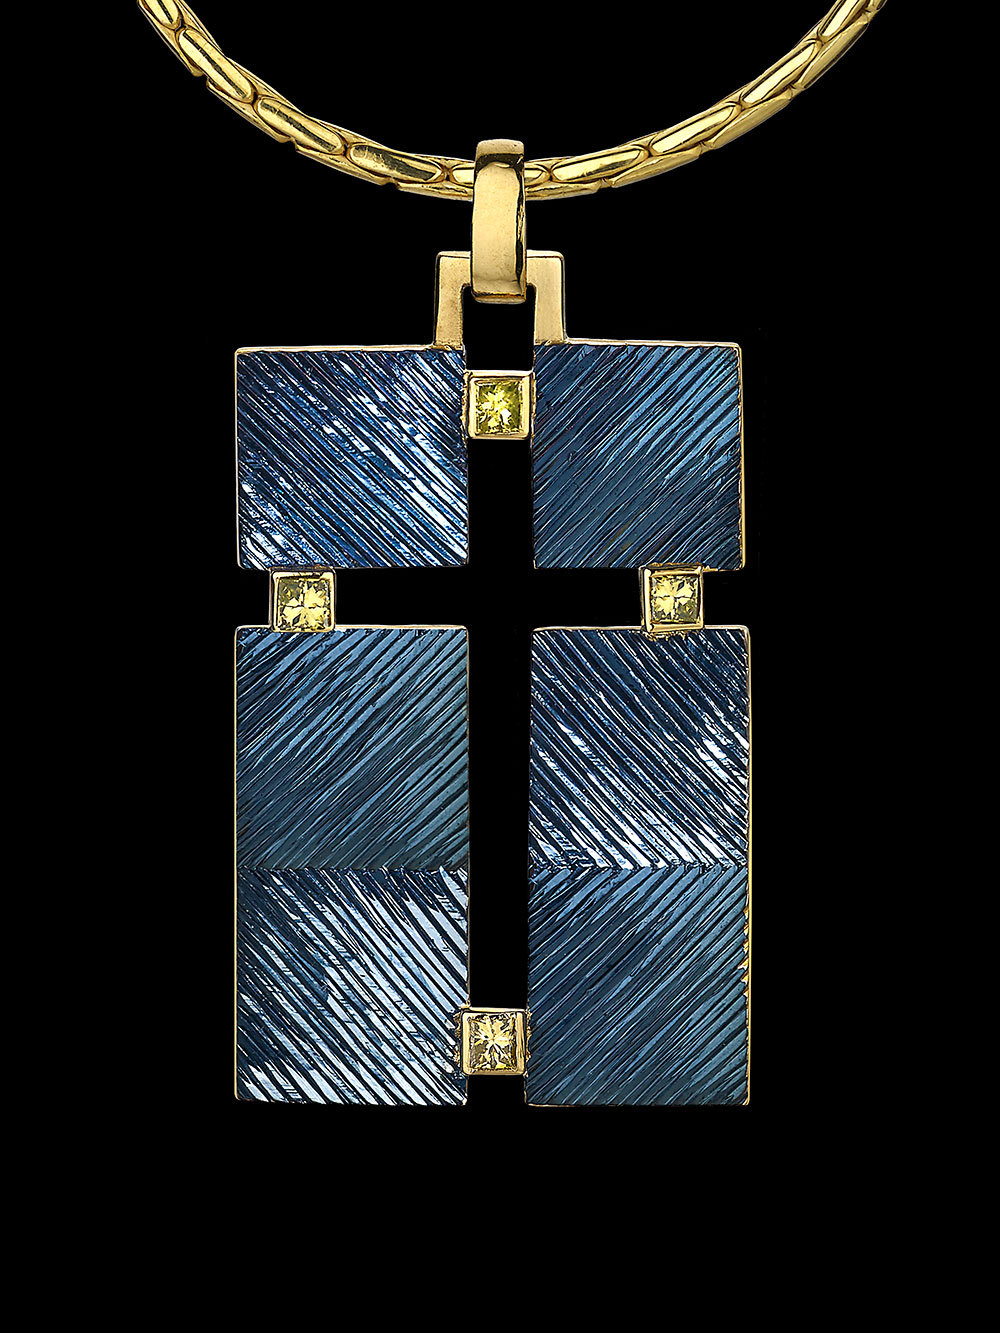 "<a href=""/node/270"">""THE CROSS THAT ISN&#039;T THERE""  Silver and 18ct gold, Gilding and Rhodium plate / Hand Engraved / Set with 4 square treated yellow diamonds. photo : Simon B Armitt 2017</a>"